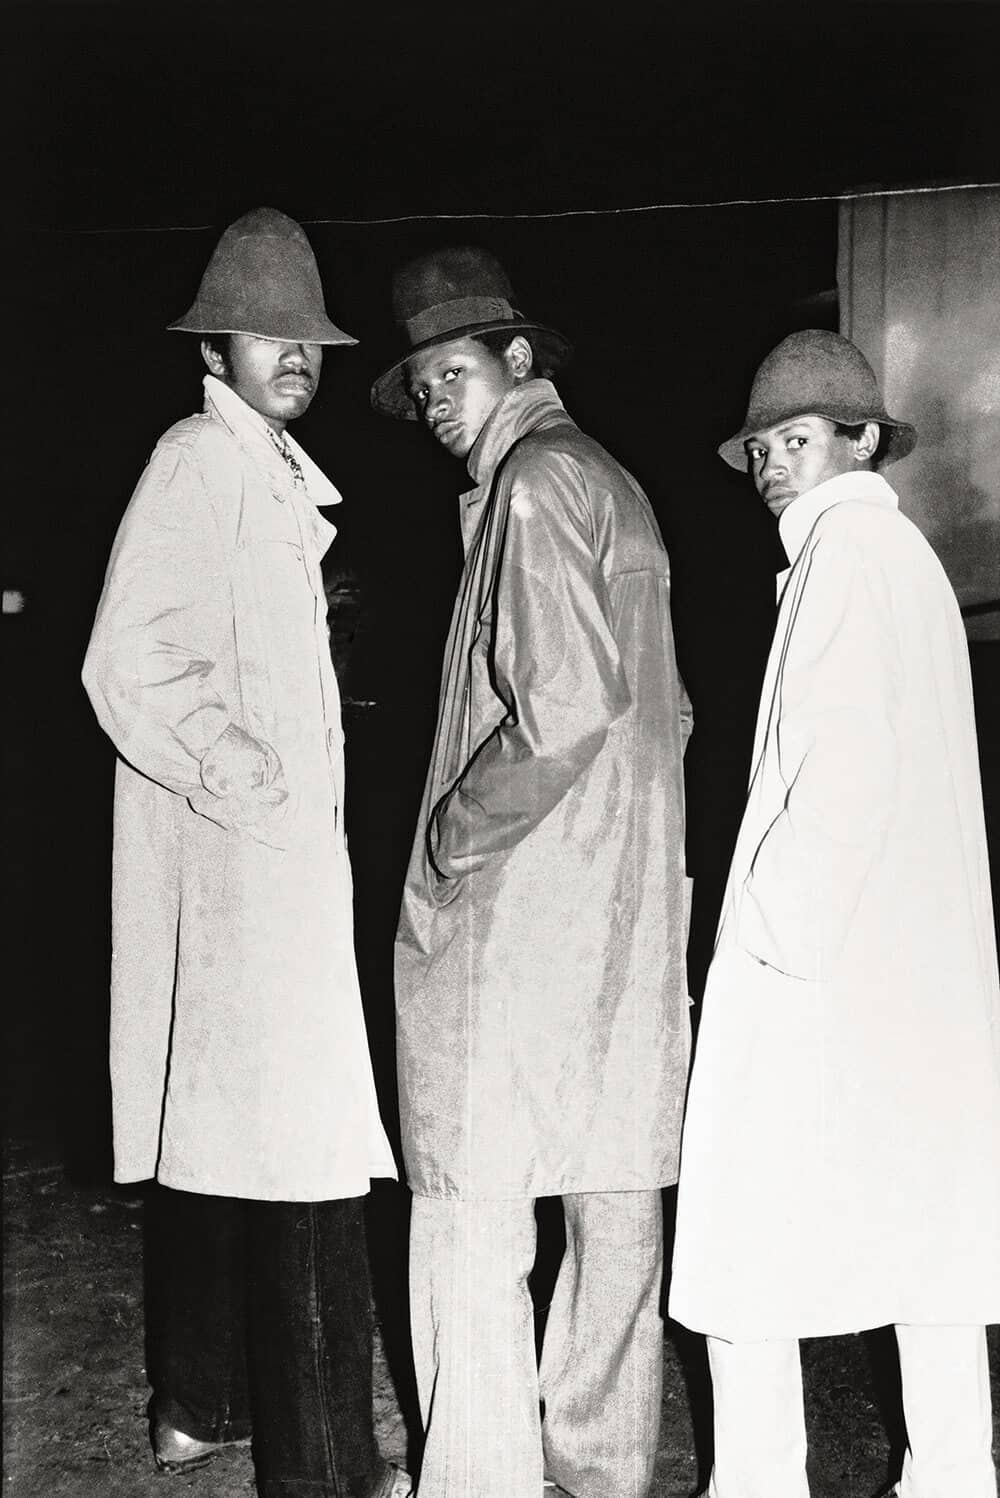 Malick Sidibé, Les faux agents du FBI, 1974 Signed gelatin silver print, 2011. 60 x 50cm. © Malick Sidibé Courtesy collection André Magnin.